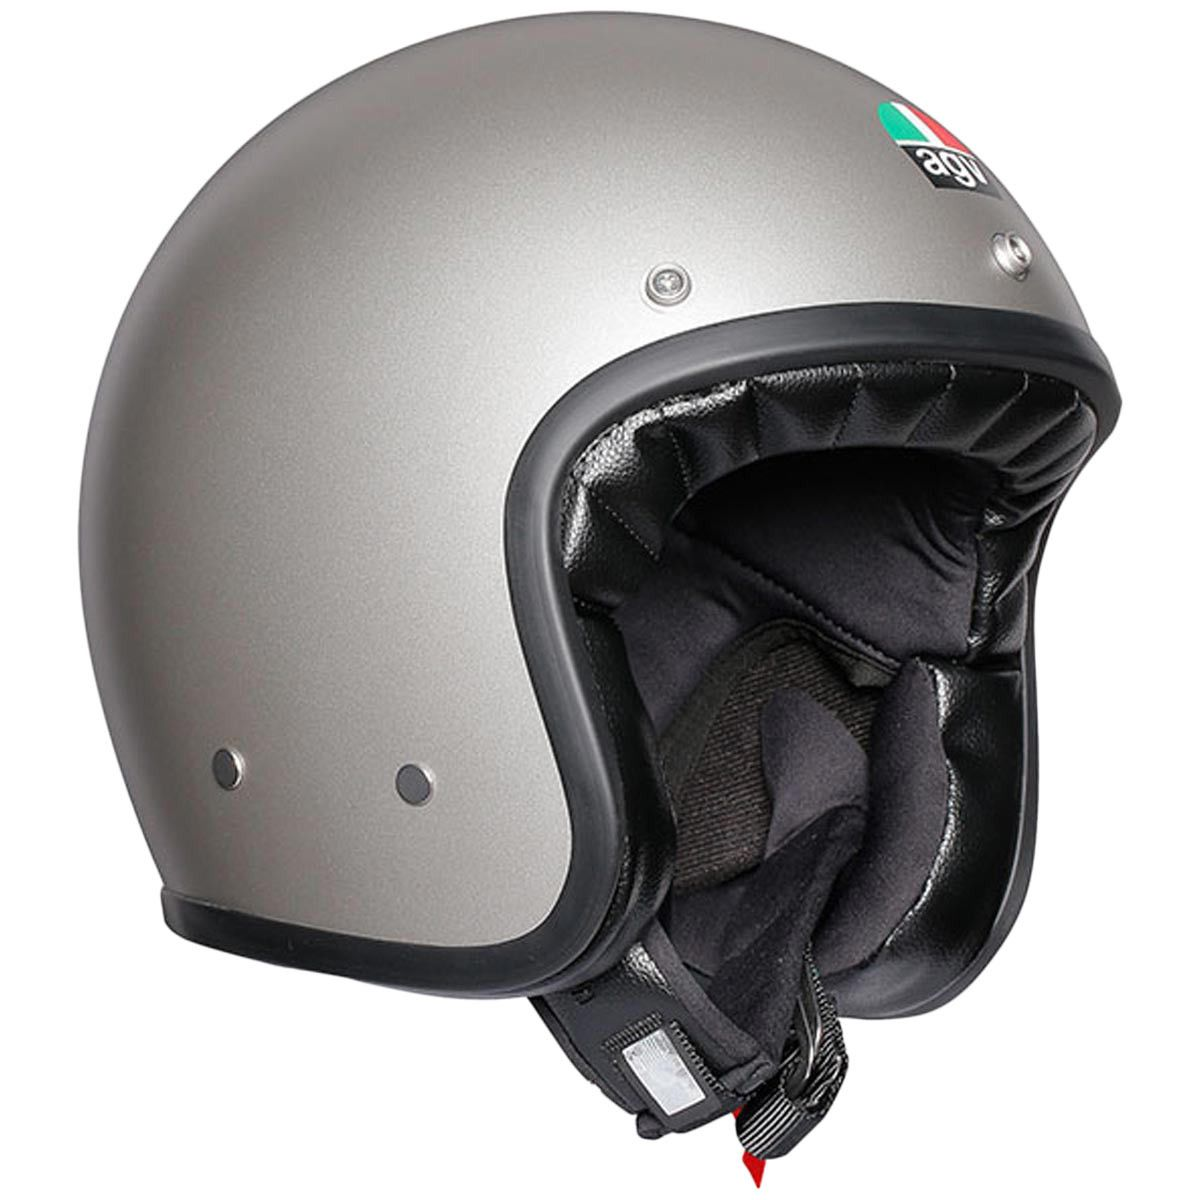 d723629234937 AGV X70 Mono Helmet in Matt Grey - Great for cruising the countryside or  nipping through traffic in the city streets. A double-D closure ensures a  safe fit ...